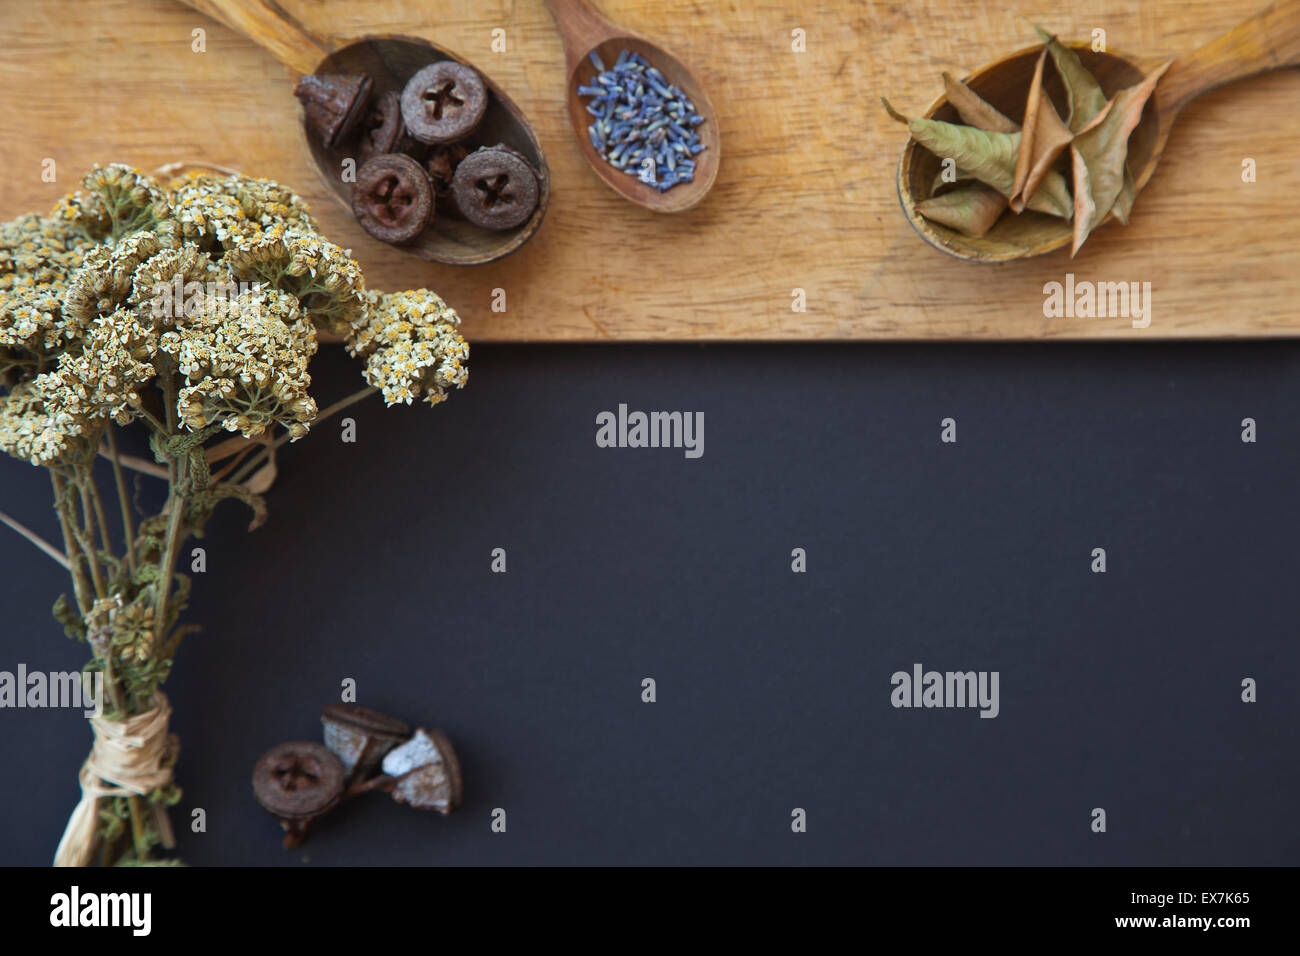 Kitchen background with copy space, Old Wooden cutting board and dark black table surface. Restaurant menu background - Stock Image